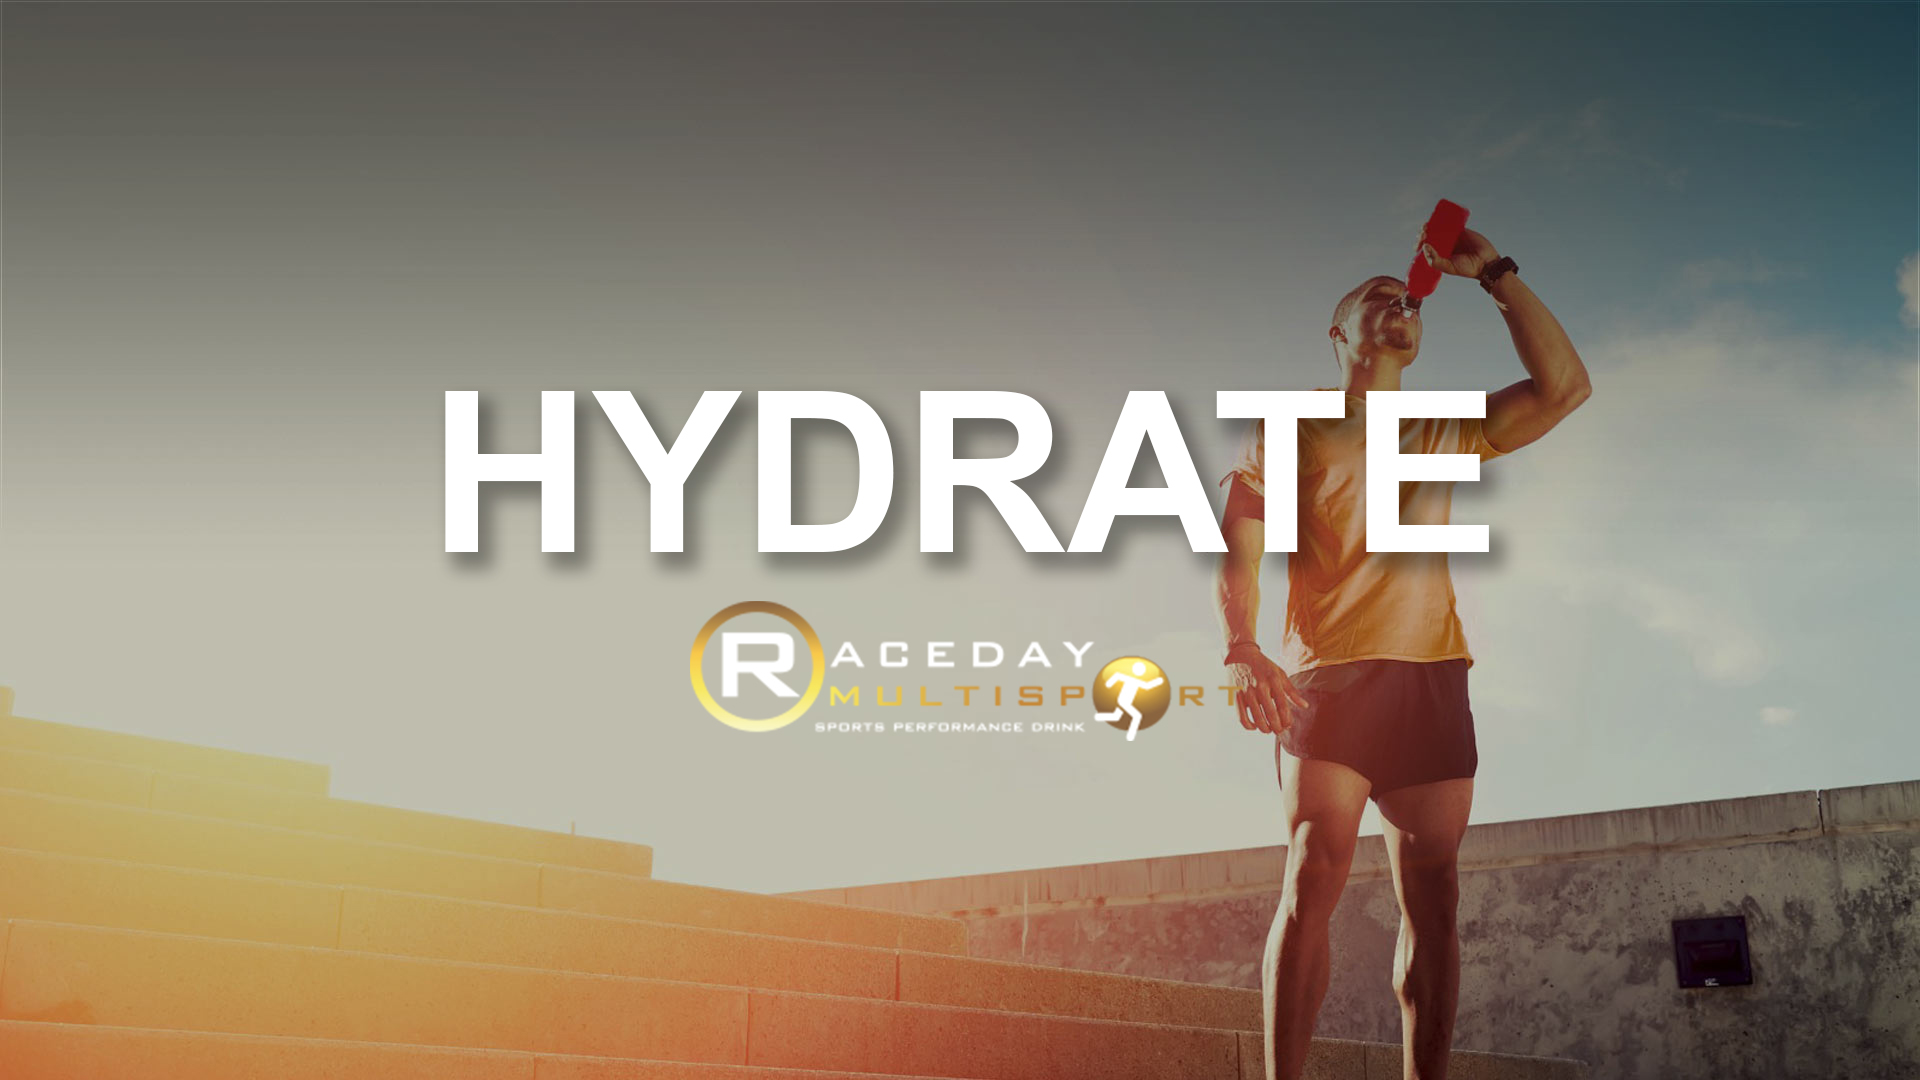 What and how to stay hydrated